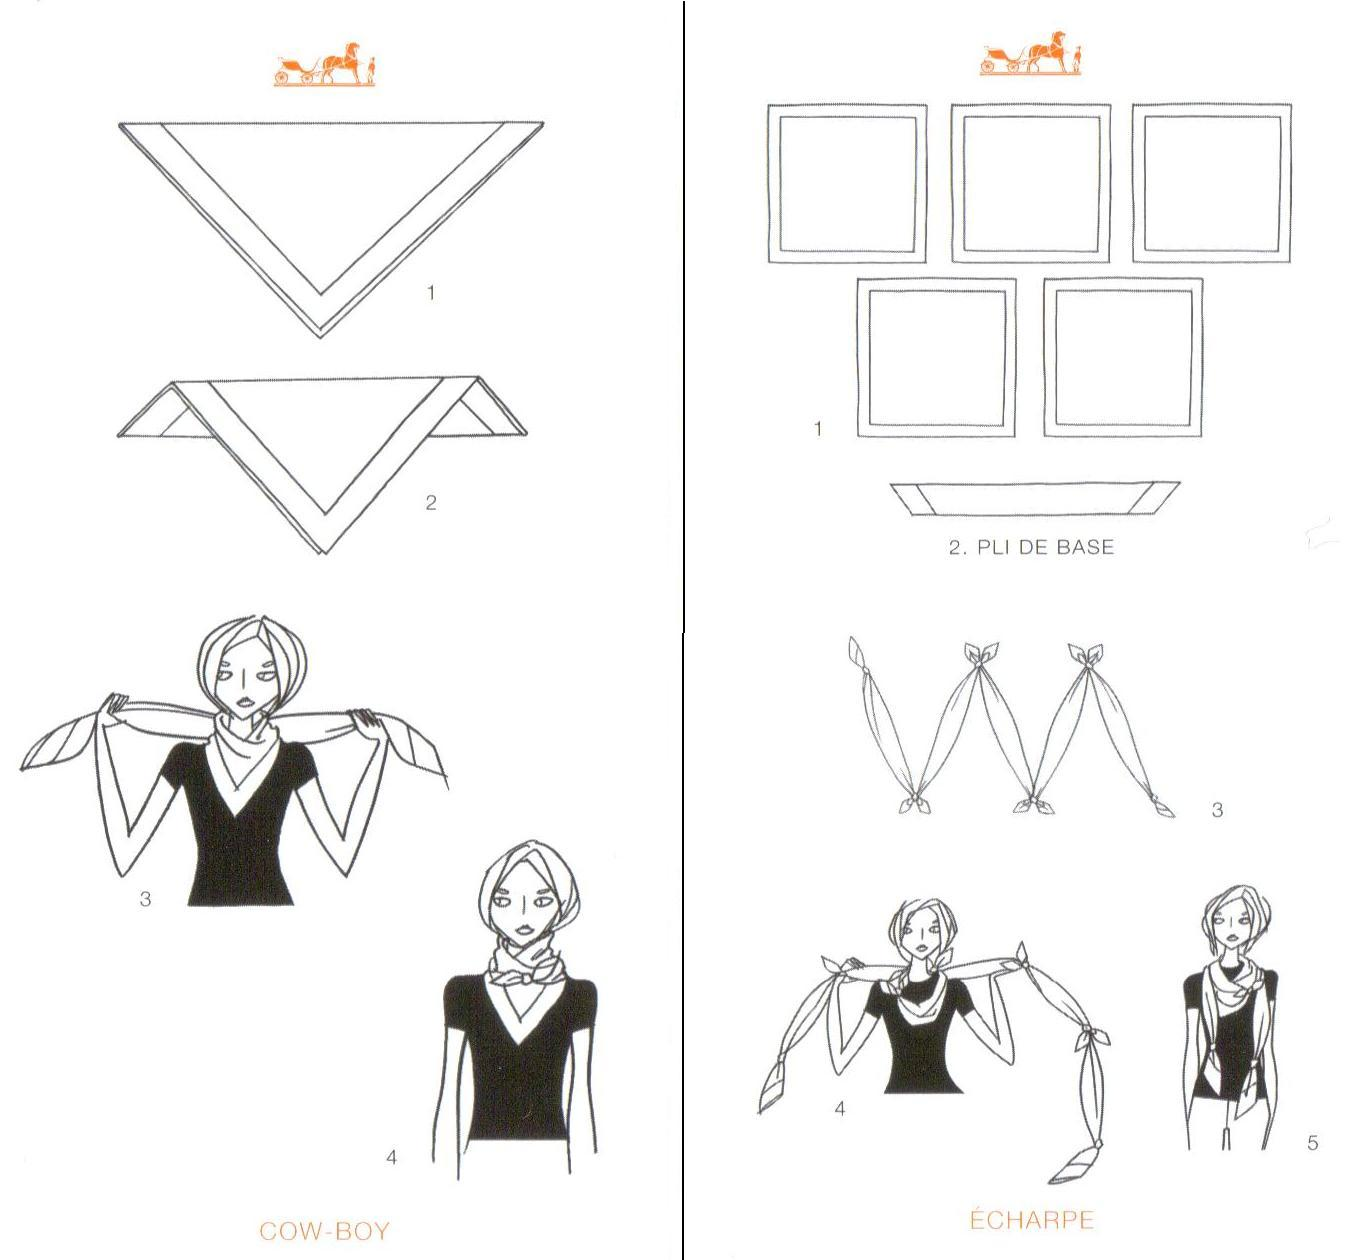 Scarf Tying Hermes Style Musing Mends The Soul Diagram Posted 22nd February 2012 By Lauren